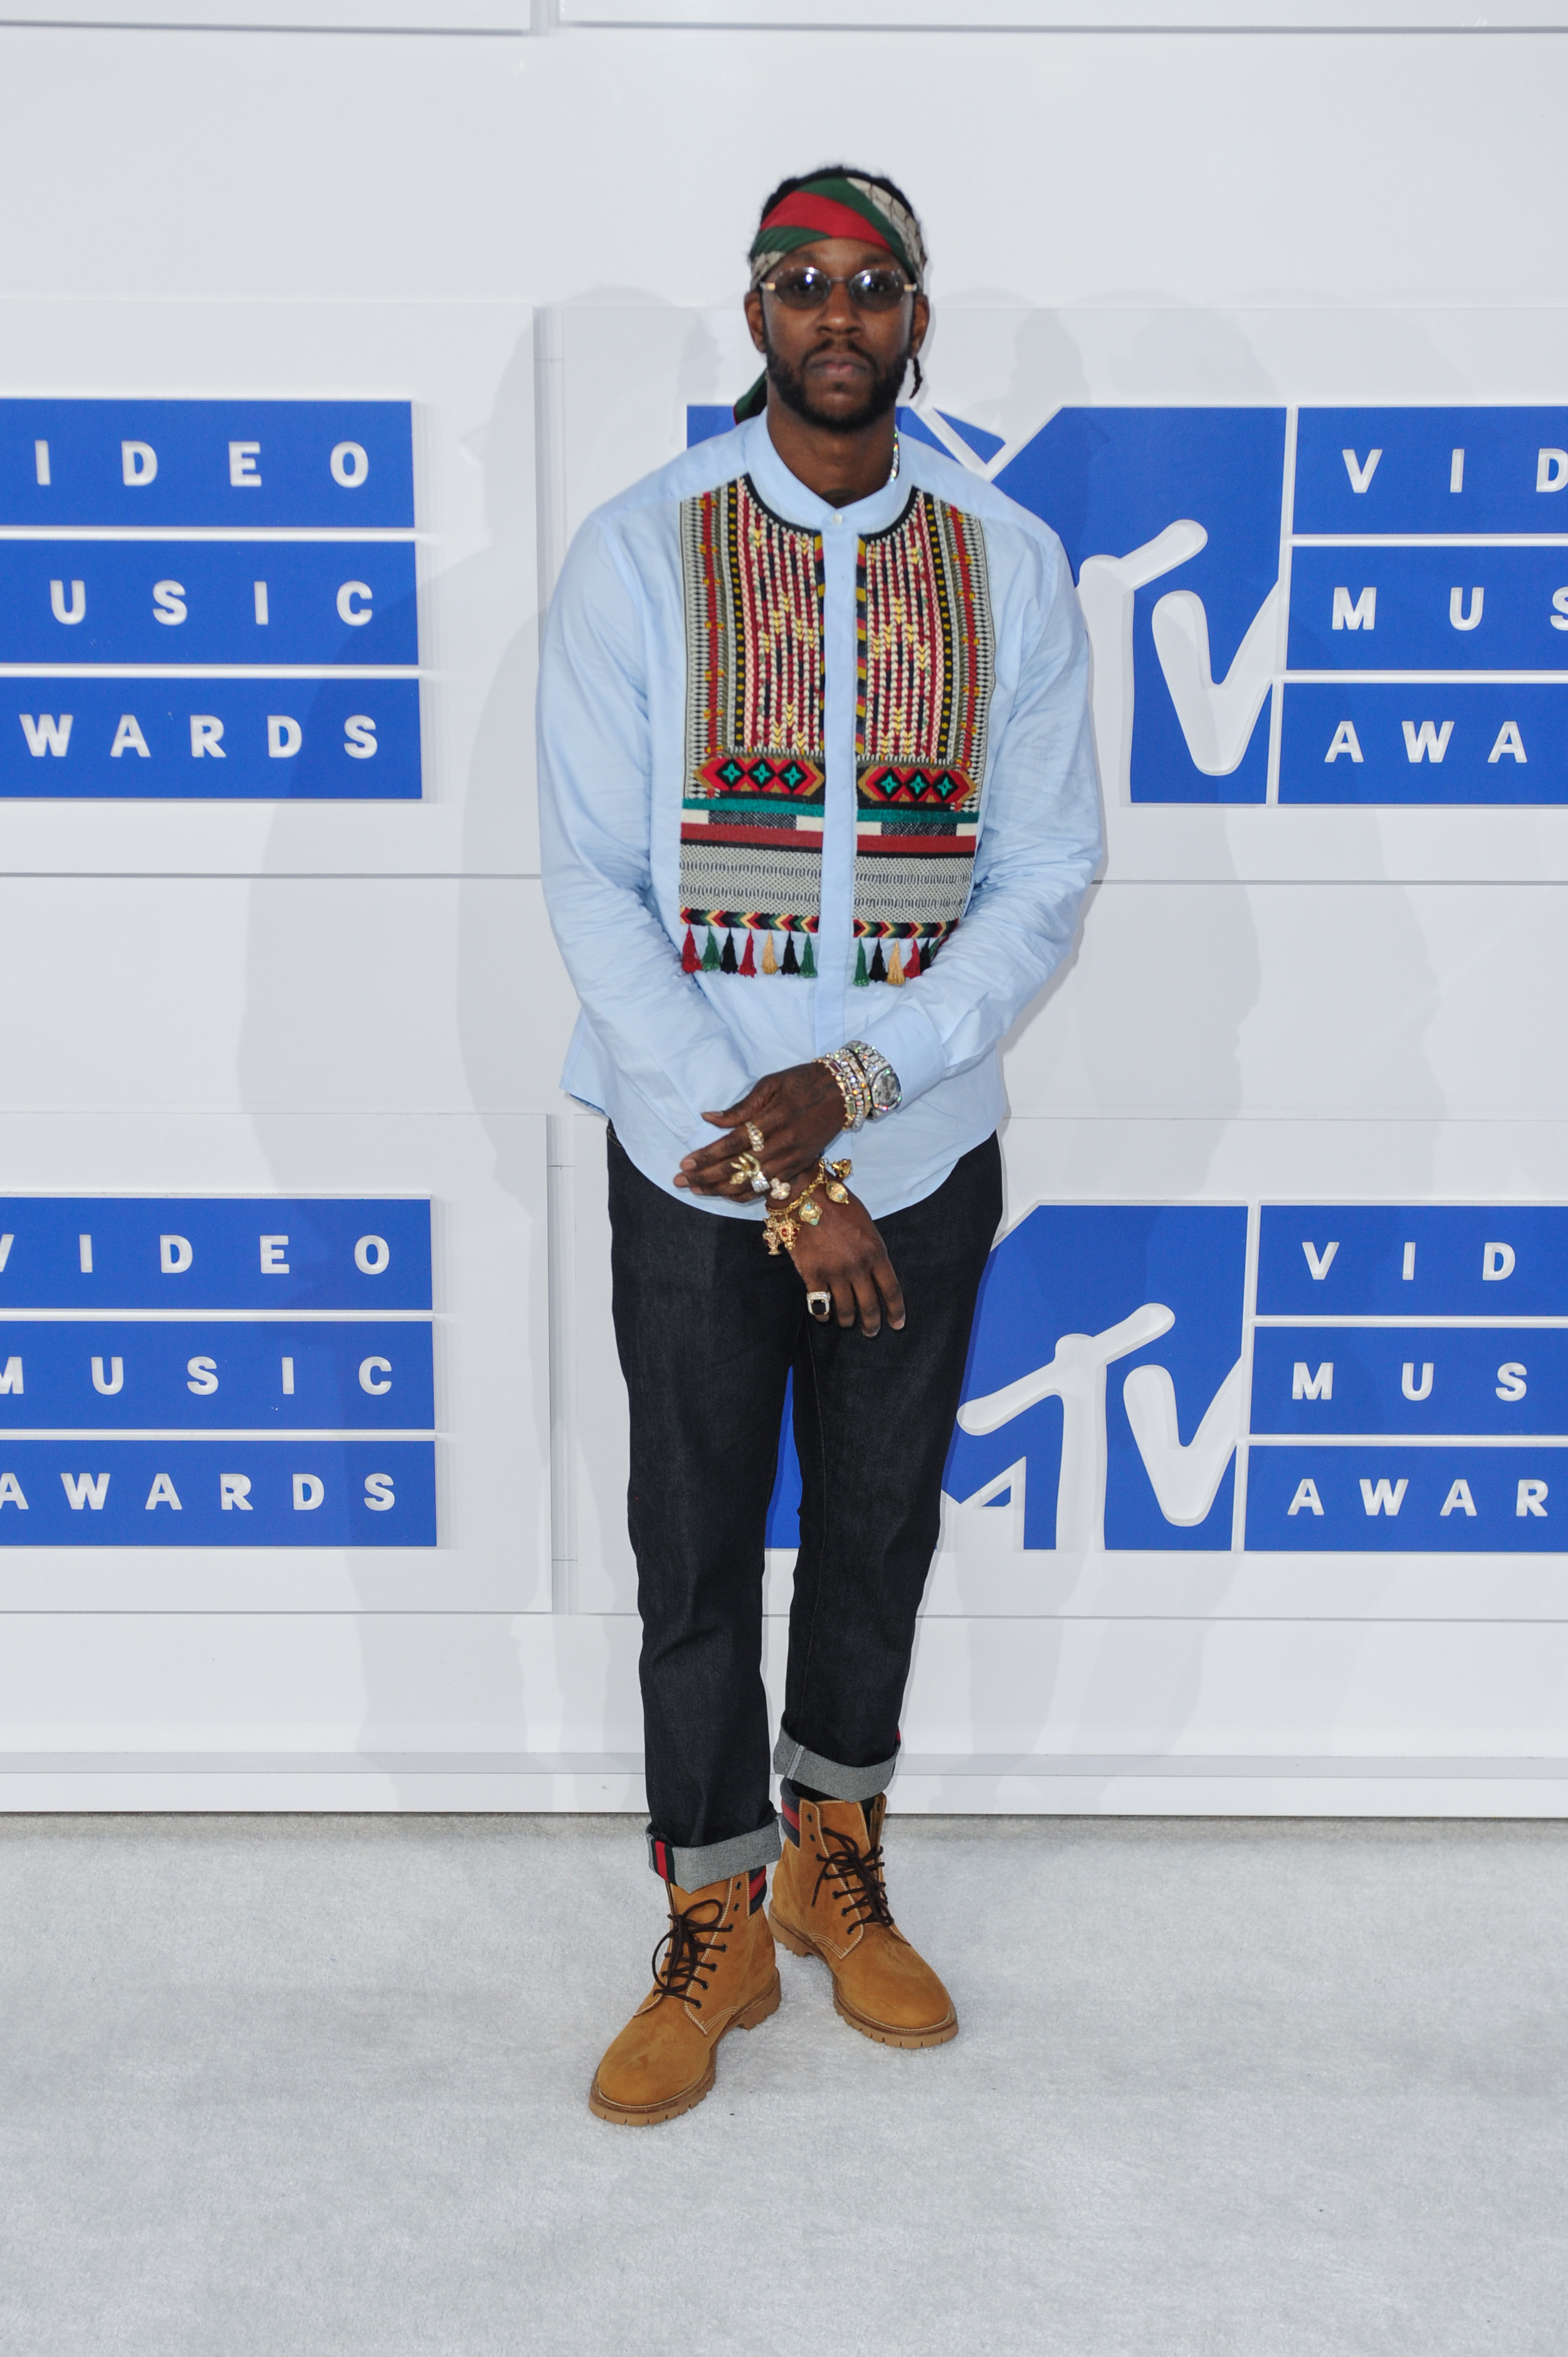 2 Chainz attending the MTV Video Music Awards 2016 at the Madison Square Garden in New York City.  Featuring: 2 Chainz Where: New York, New York, United States When: 28 Aug 2016 Credit: WENN.com